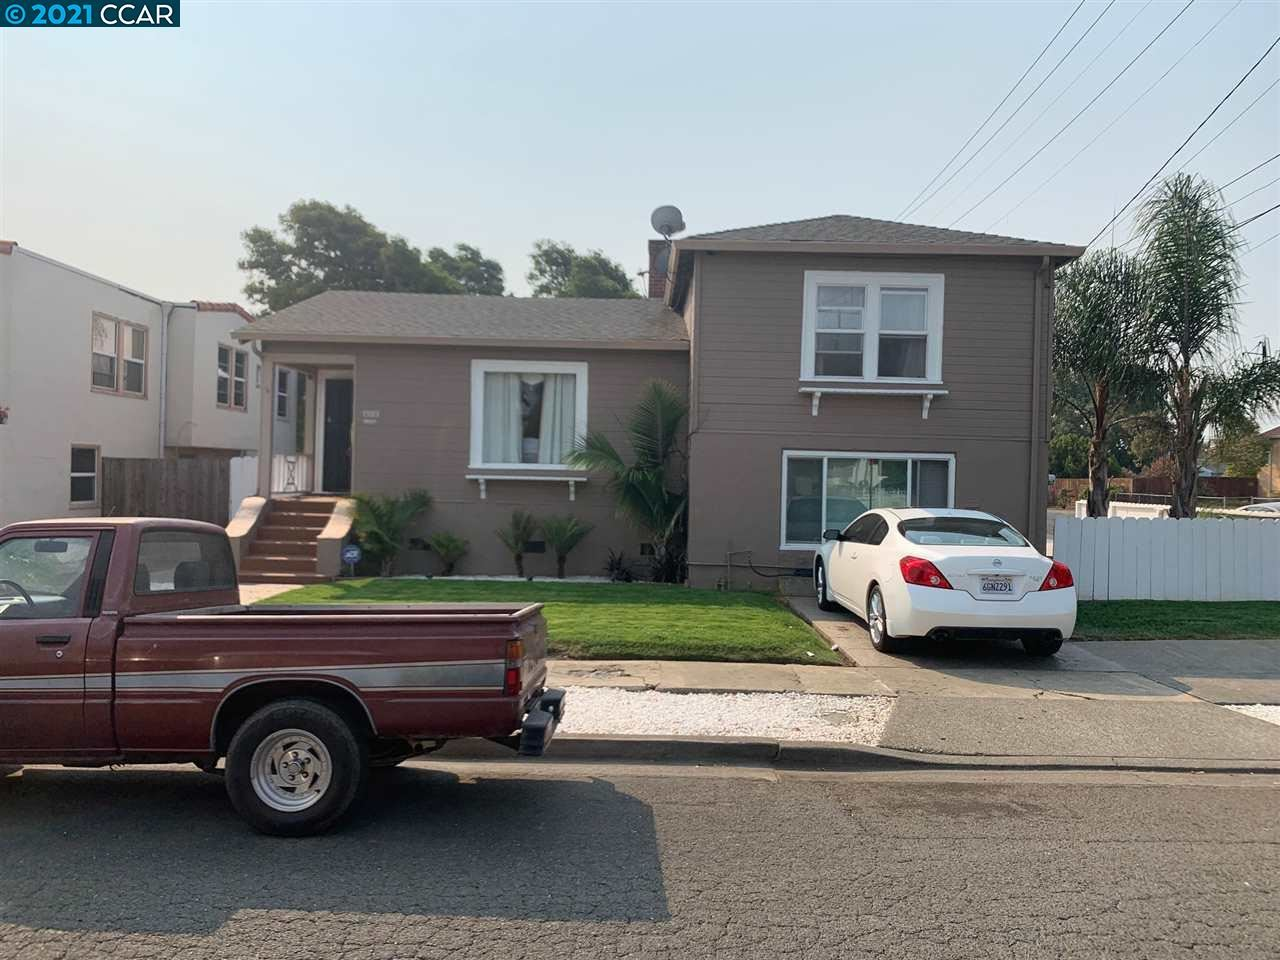 Photo for 1303 Ryder St, VALLEJO, CA 94590 (MLS # 40934515)